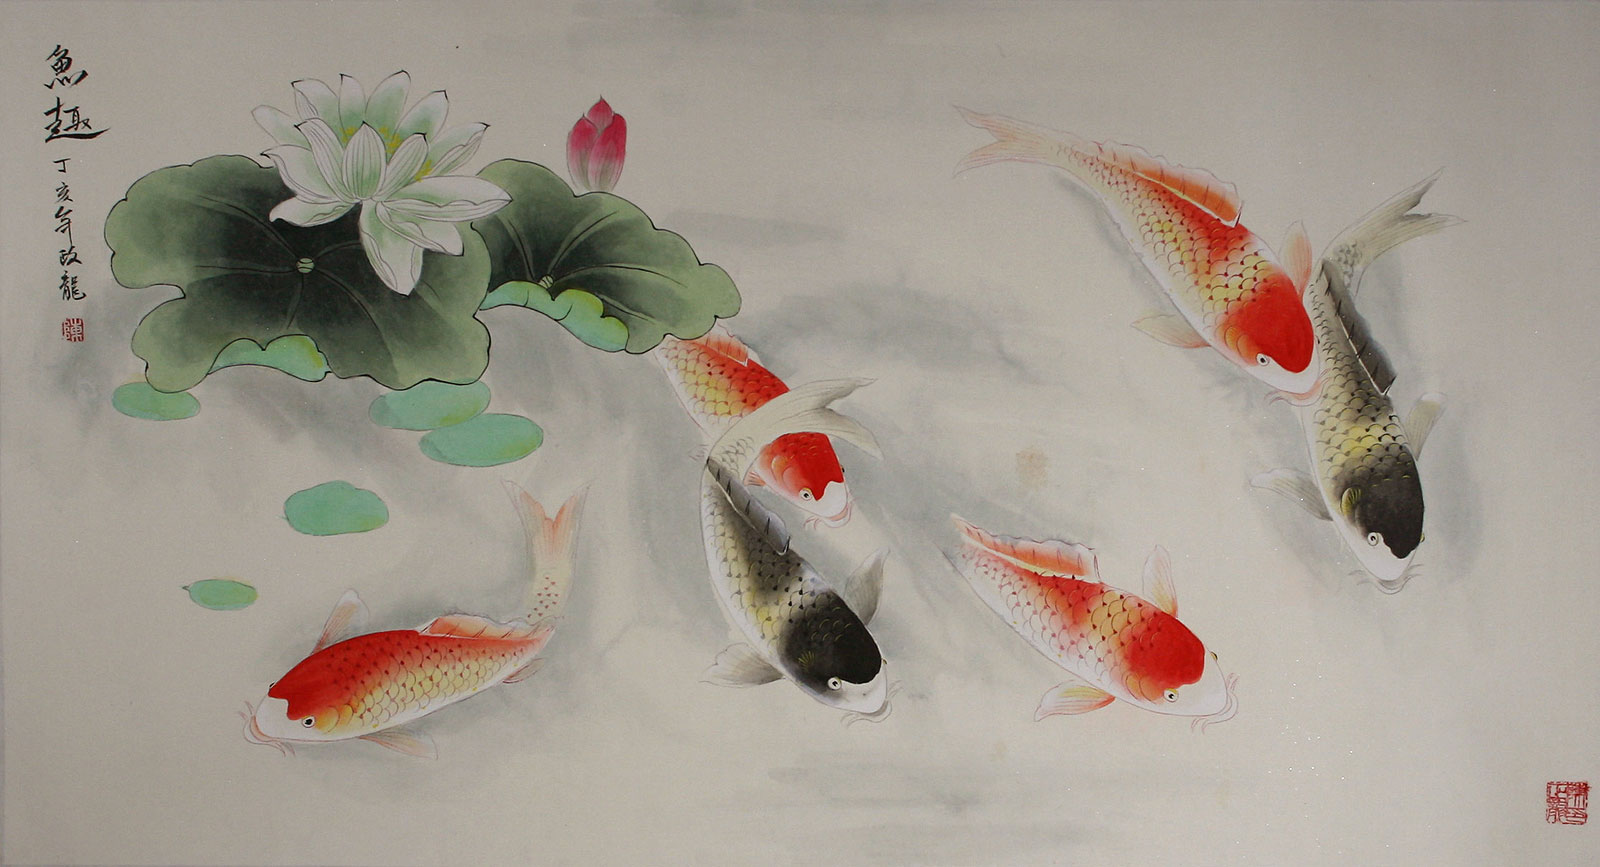 Chinese koi fish watercolor painting asian koi fish for Japanese koi fish artwork